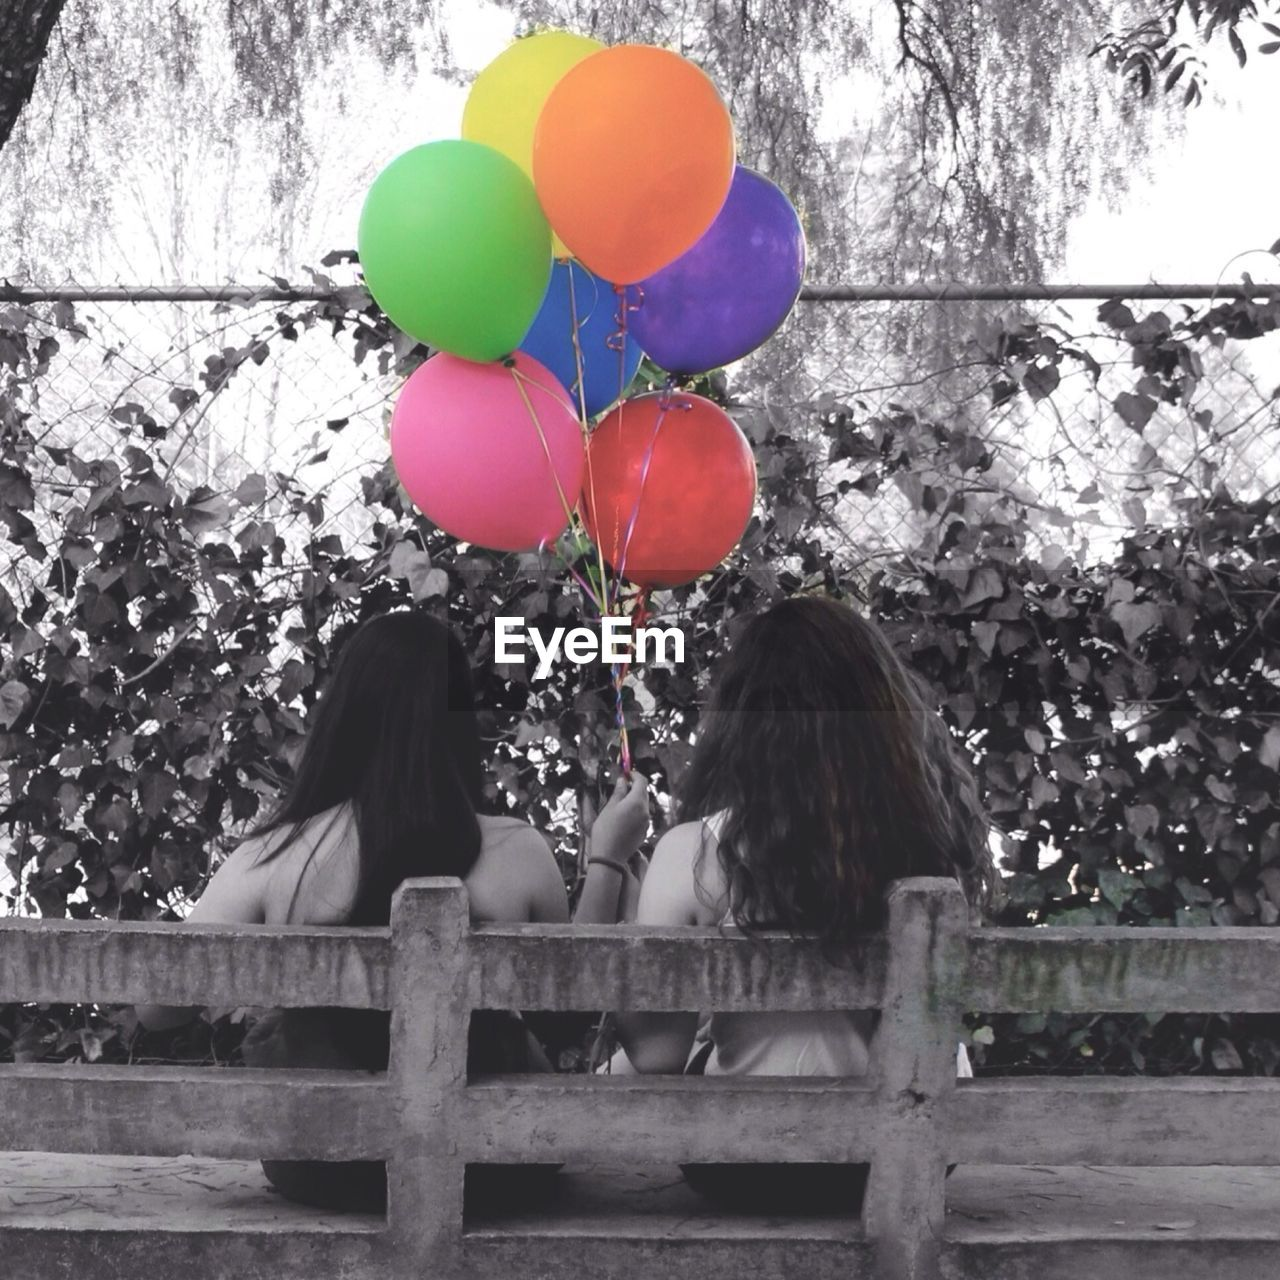 Rear View Of Women Holding Colorful Balloons In Park